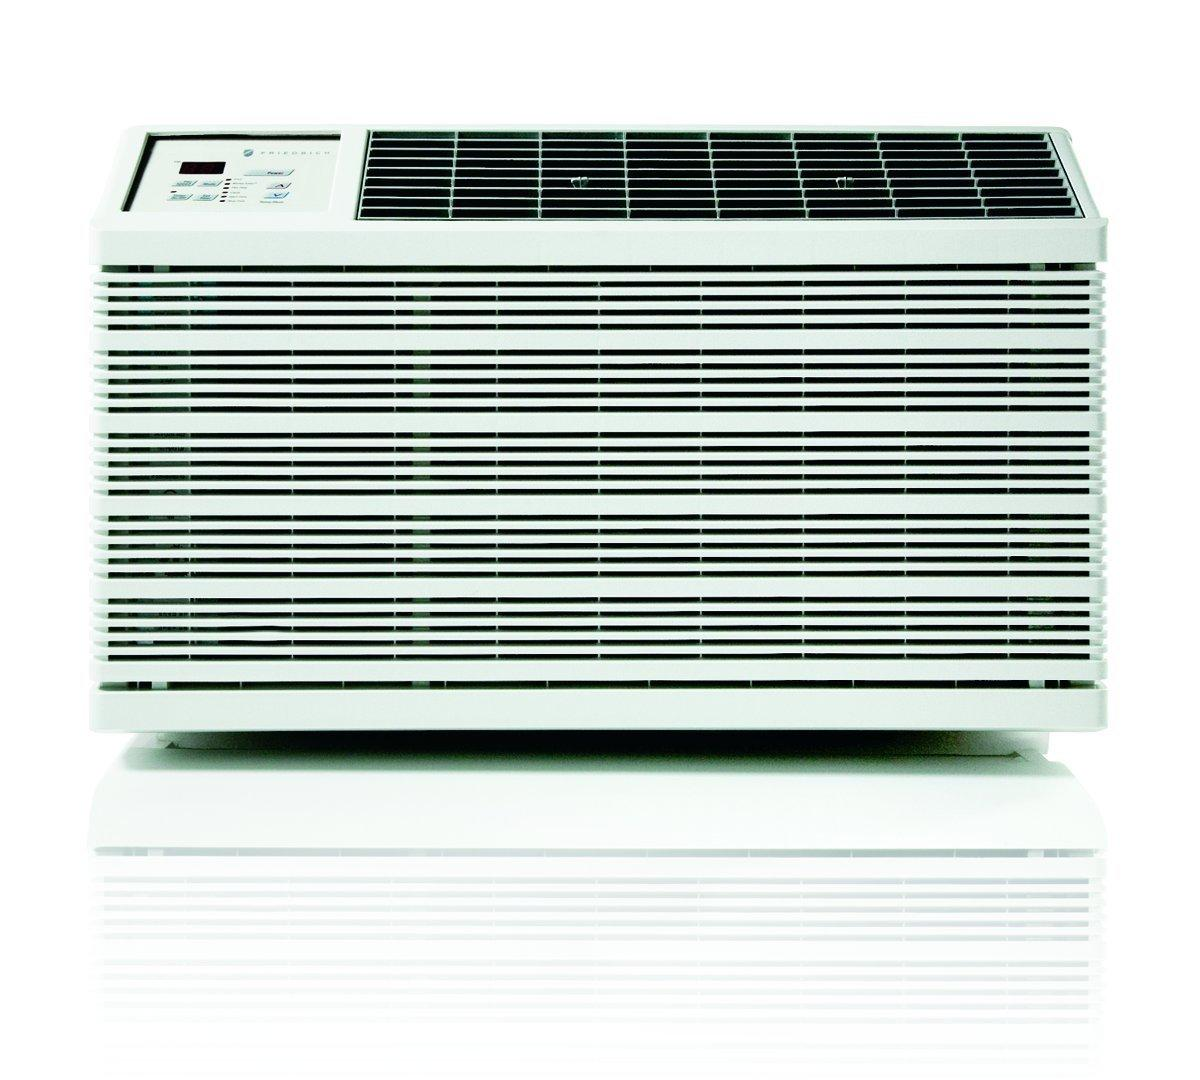 #4D7E6A WS10C10D Friedrich Ws10c10d WallMaster Series Best 10603 Air Conditioner Wall Sleeve photos with 1200x1080 px on helpvideos.info - Air Conditioners, Air Coolers and more